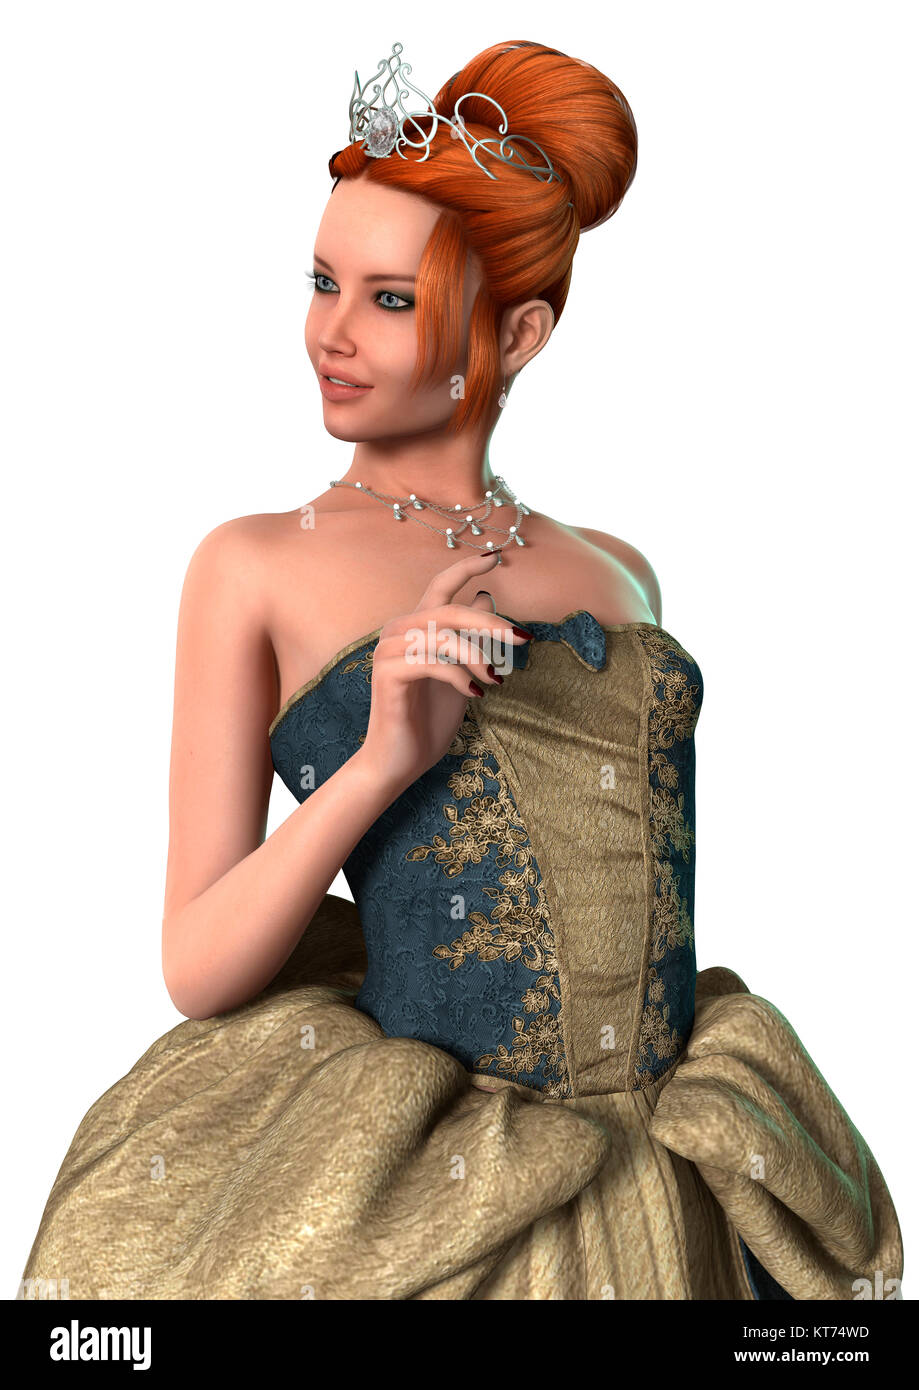 3D Rendering Fairytale Princess on White - Stock Image